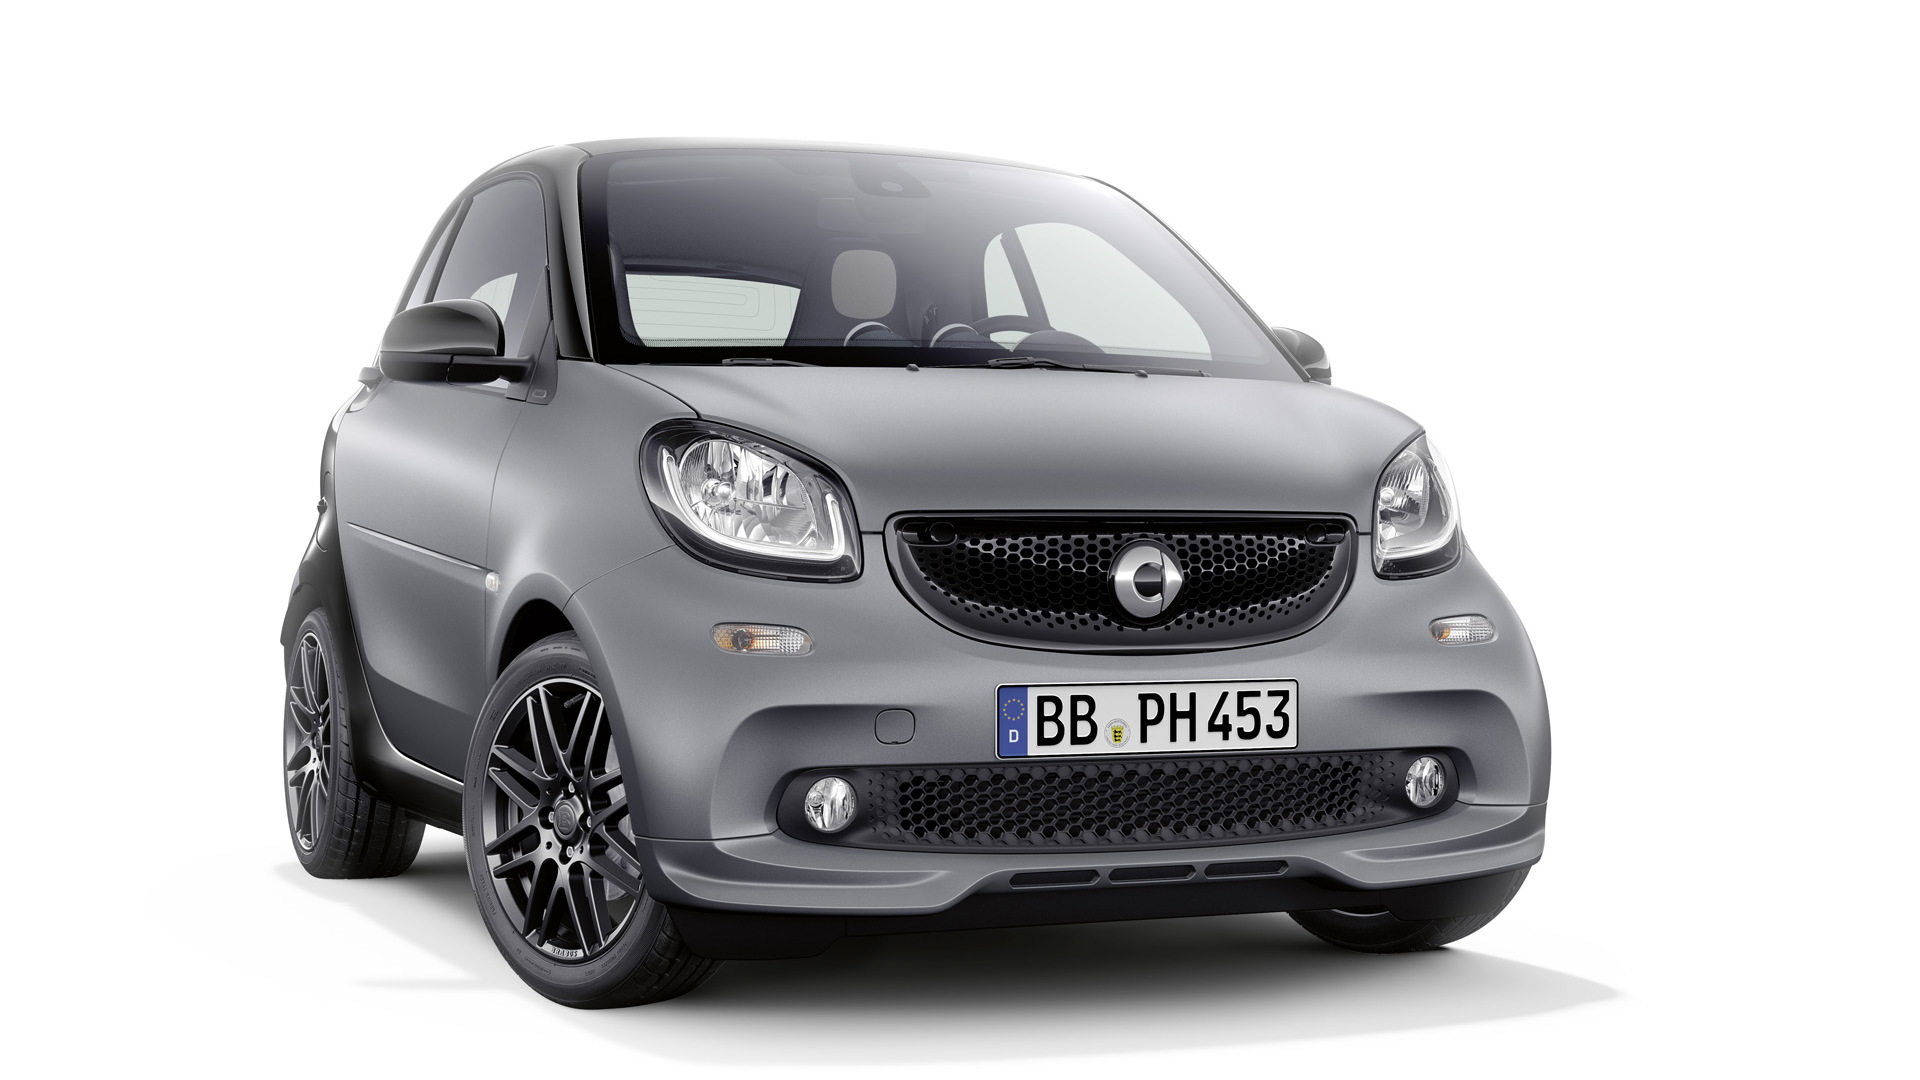 2017 Smart ForTwo equipped with Brabus Sports package